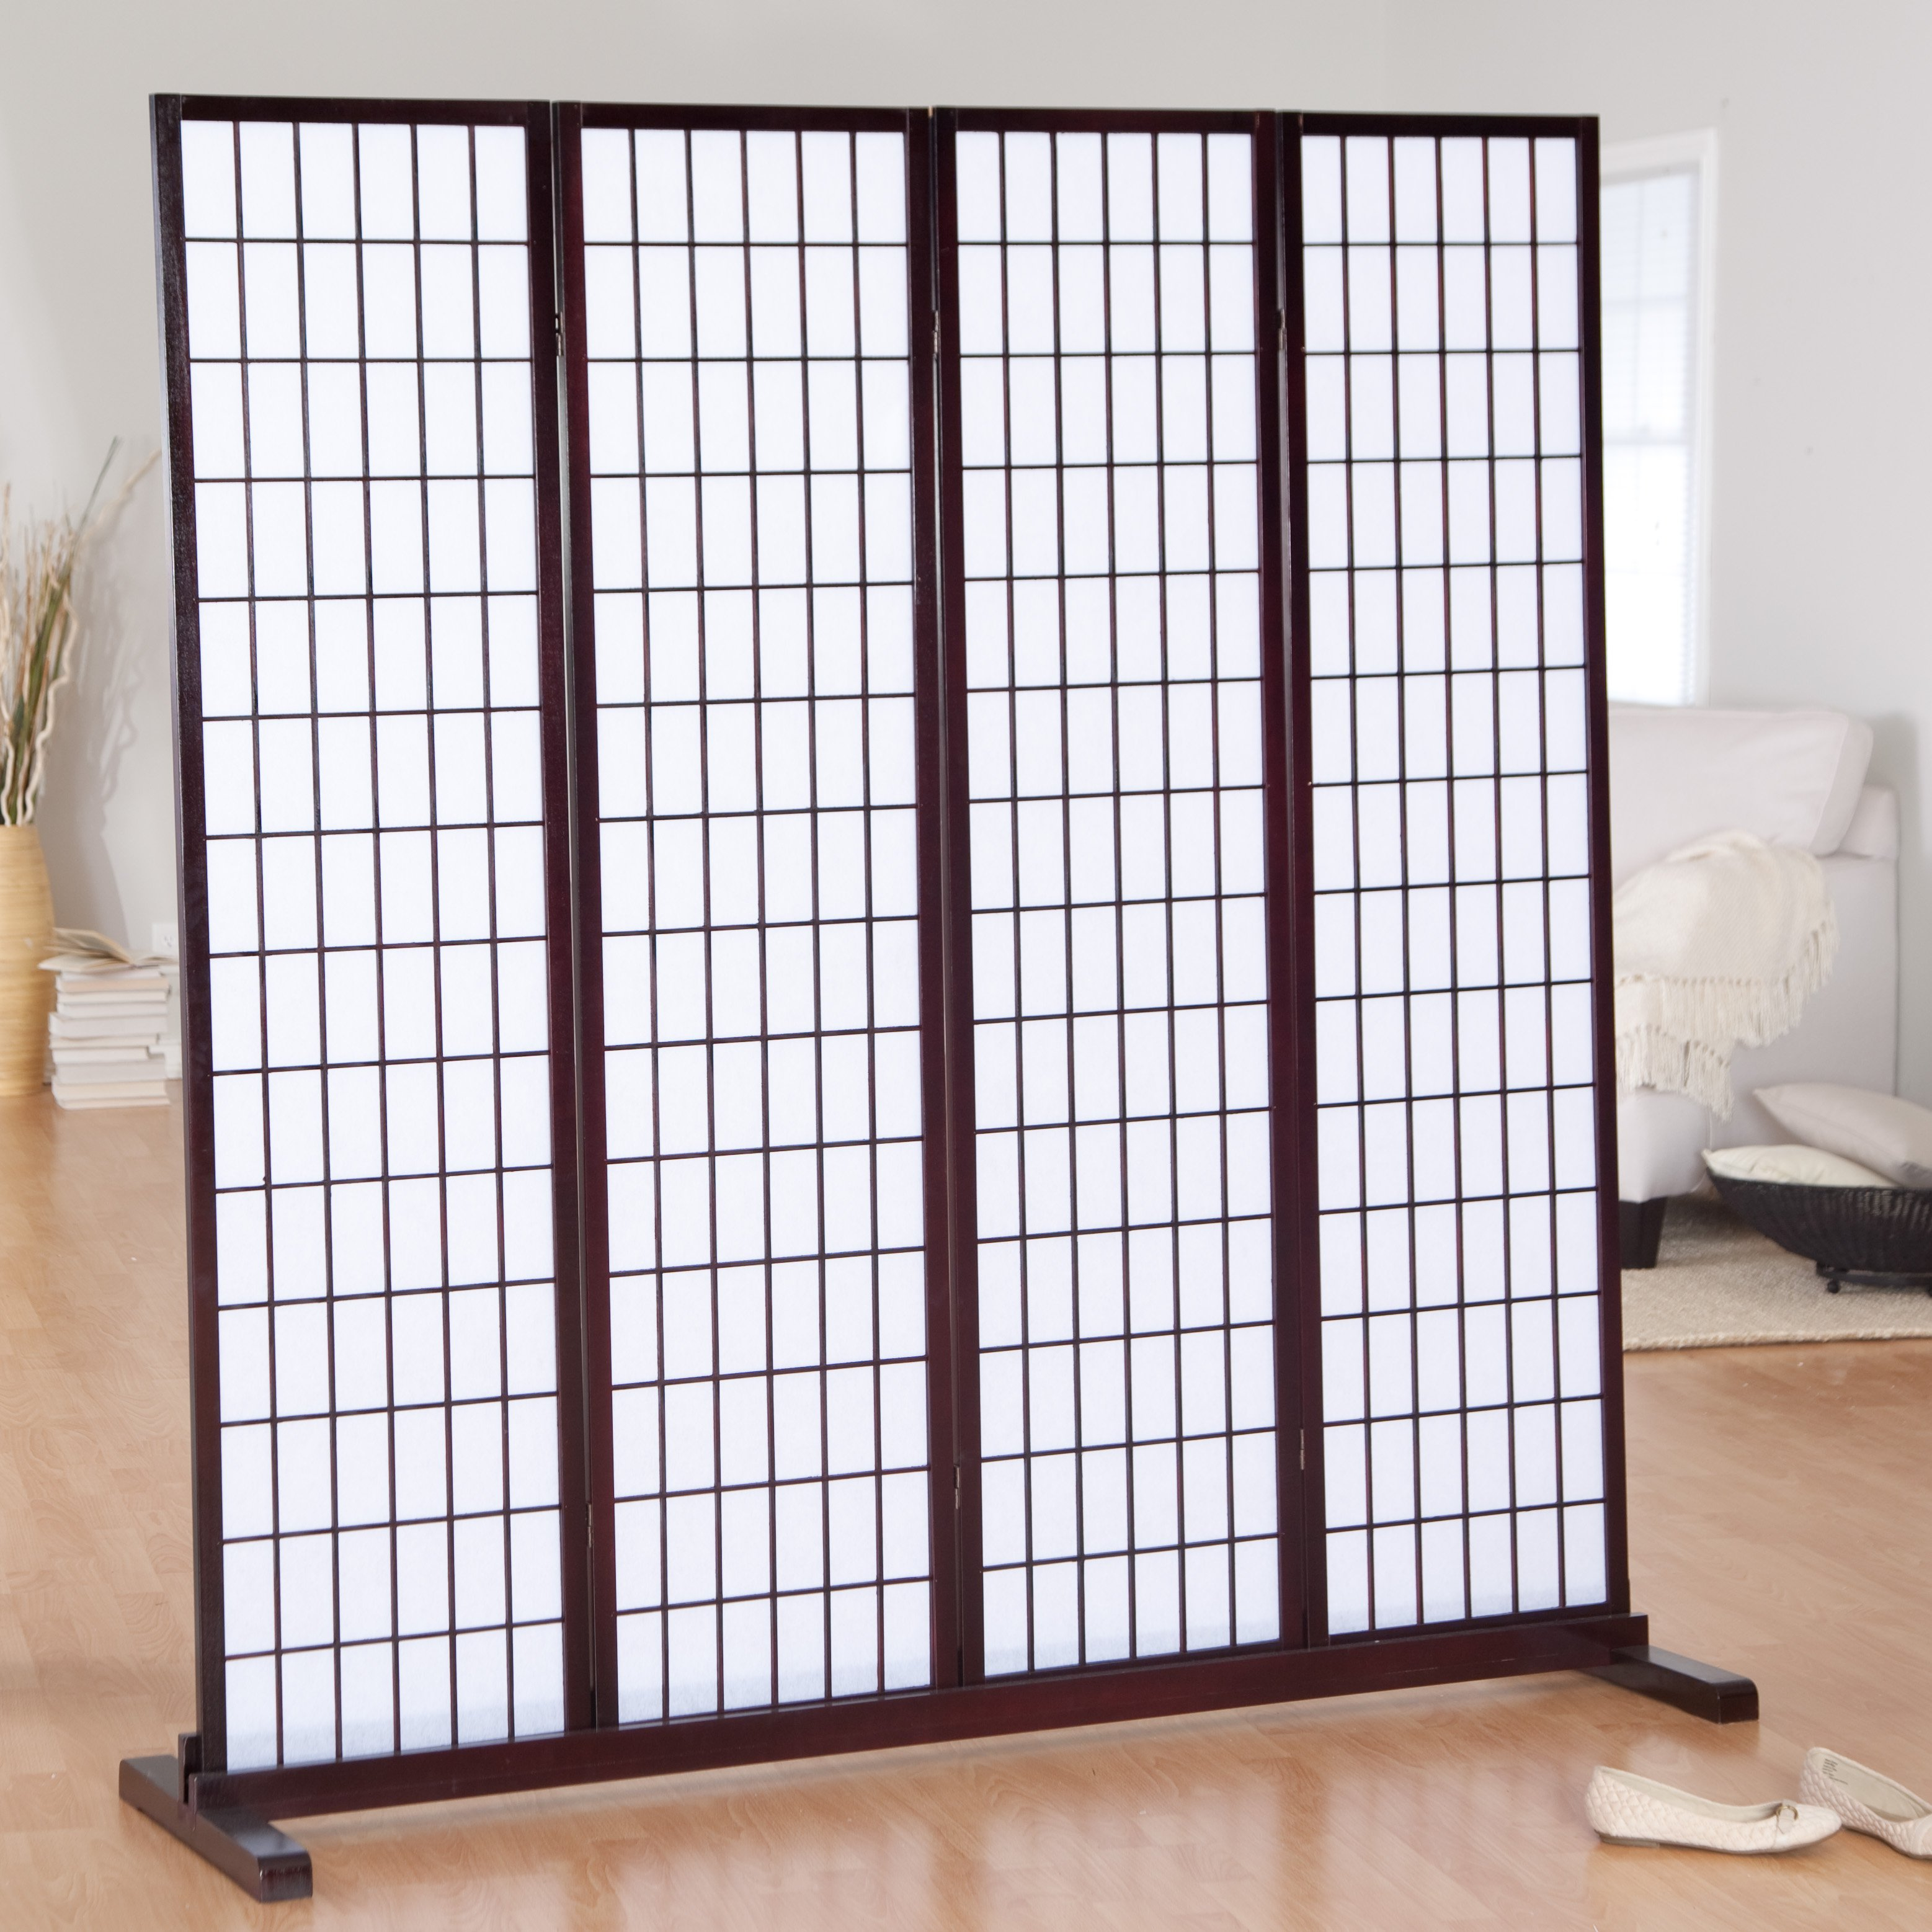 Room Dividers Home Depot | Room Separators Ikea | Lowes Room Dividers